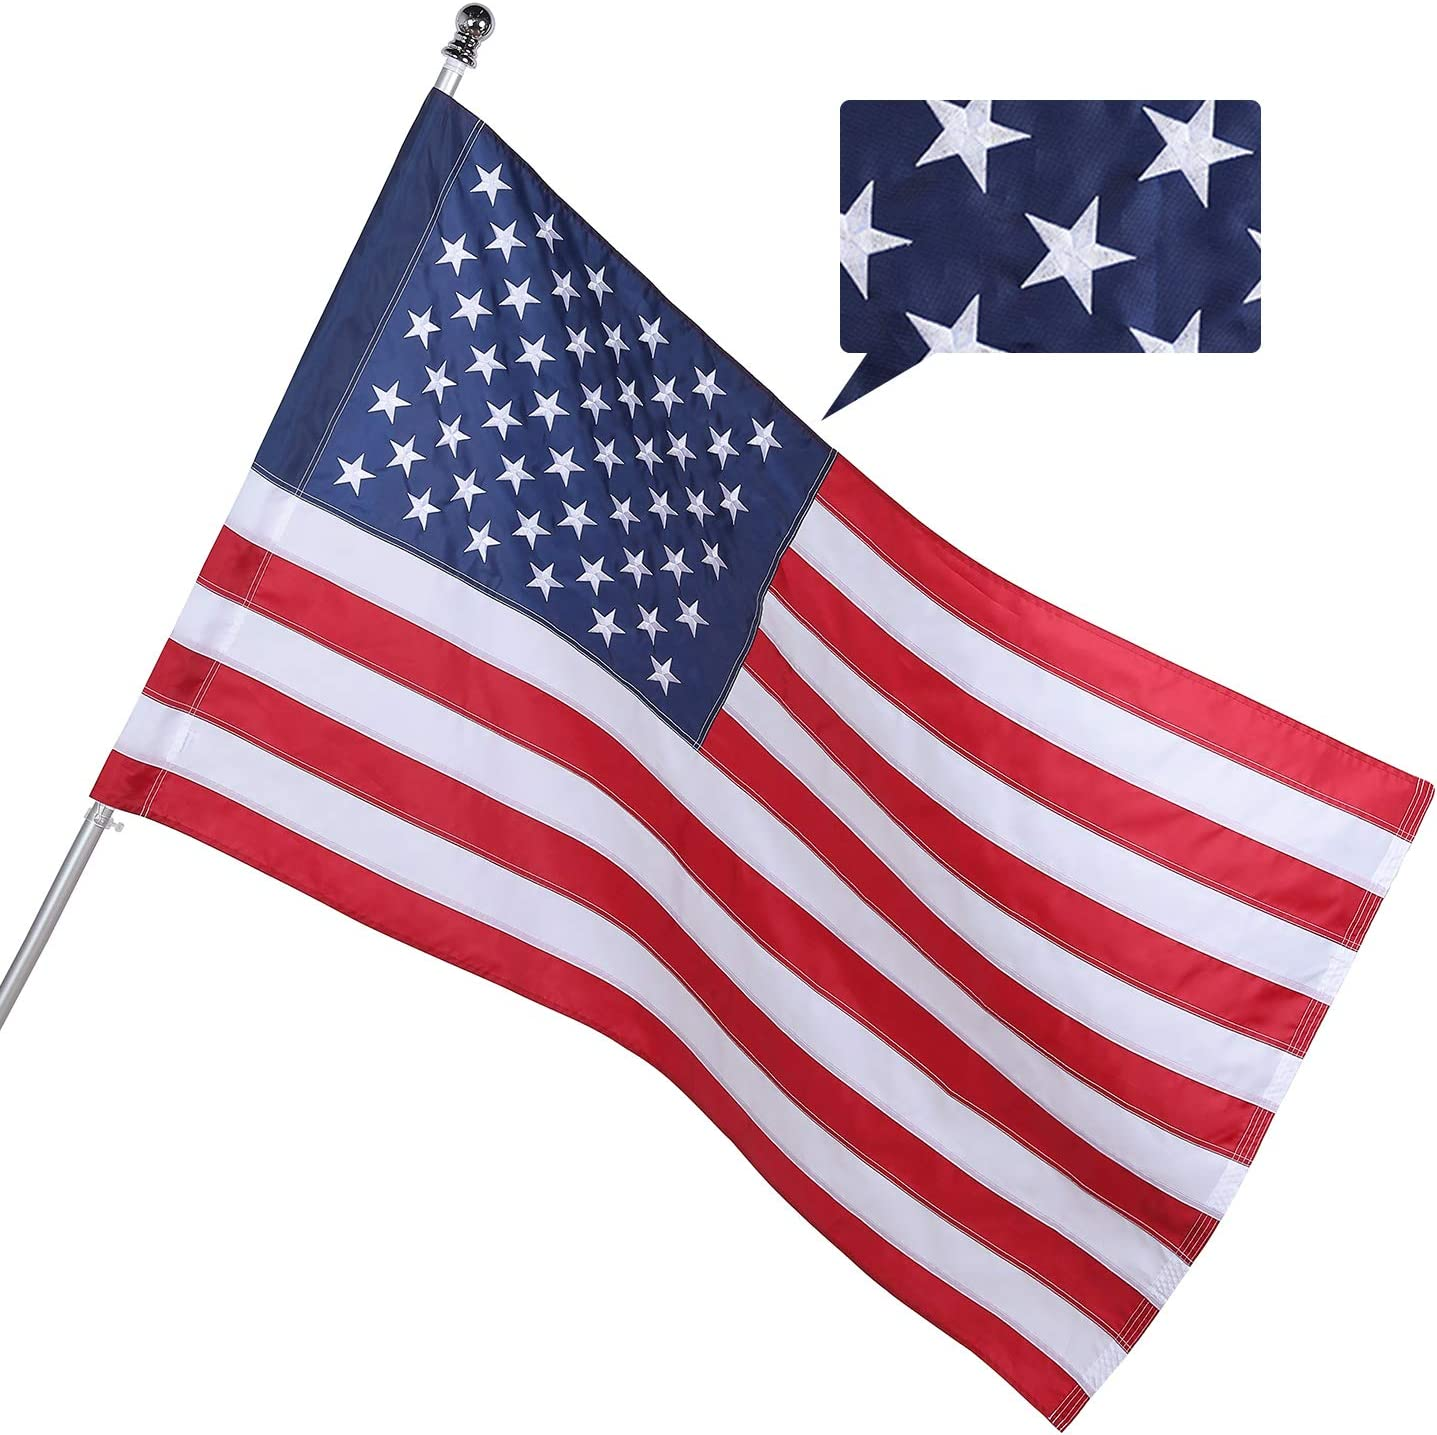 American Flag 3x5 FT Outdoor Atlanta Mall Pole Outlet ☆ Free Shipping Sleeve Hea Losong Style Banner